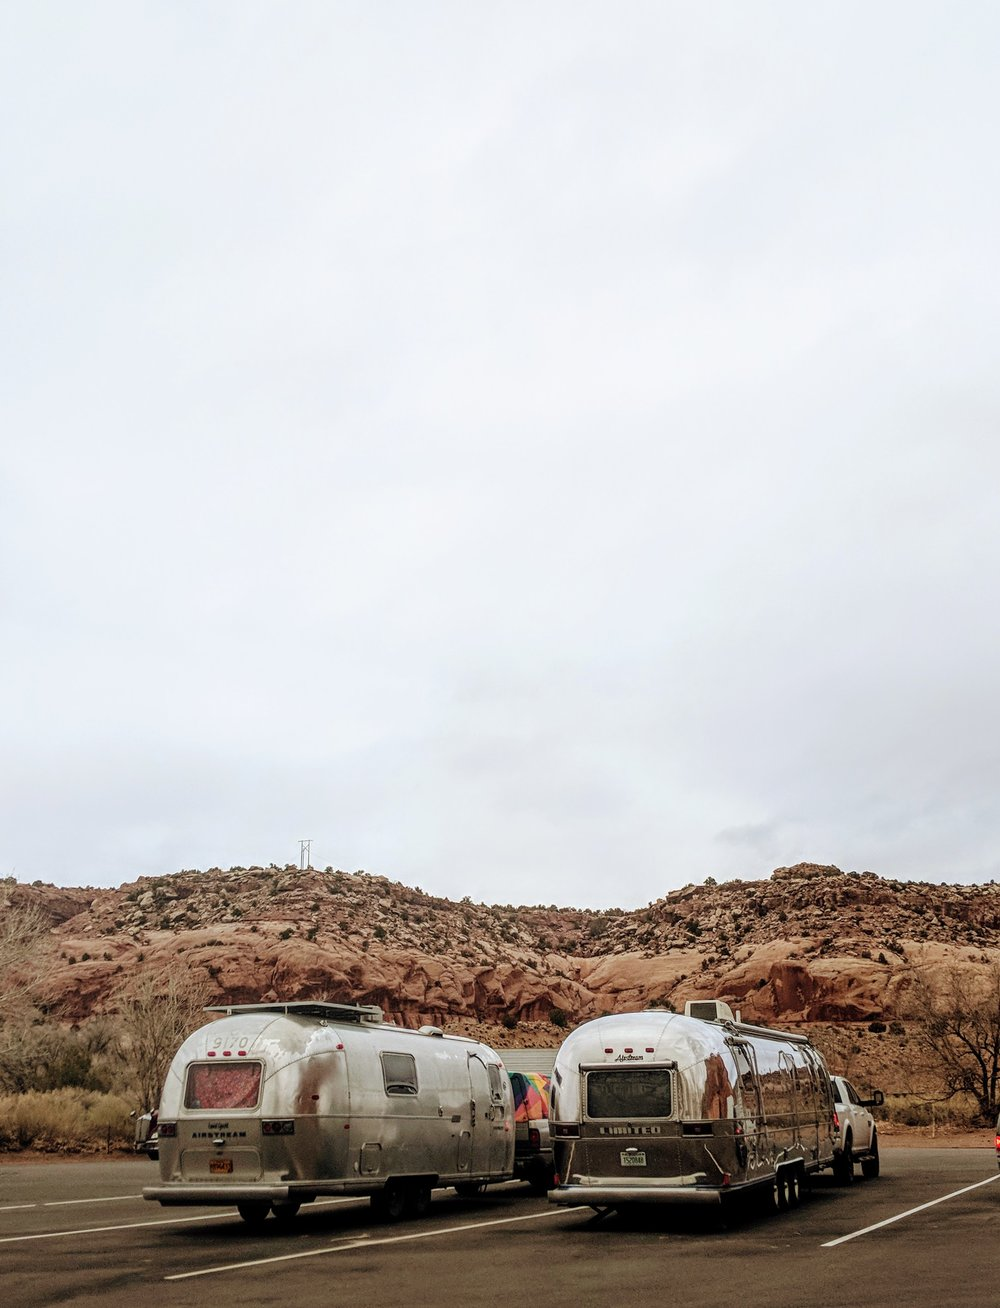 Airstream slumber party @ Hole in the Rock, UT